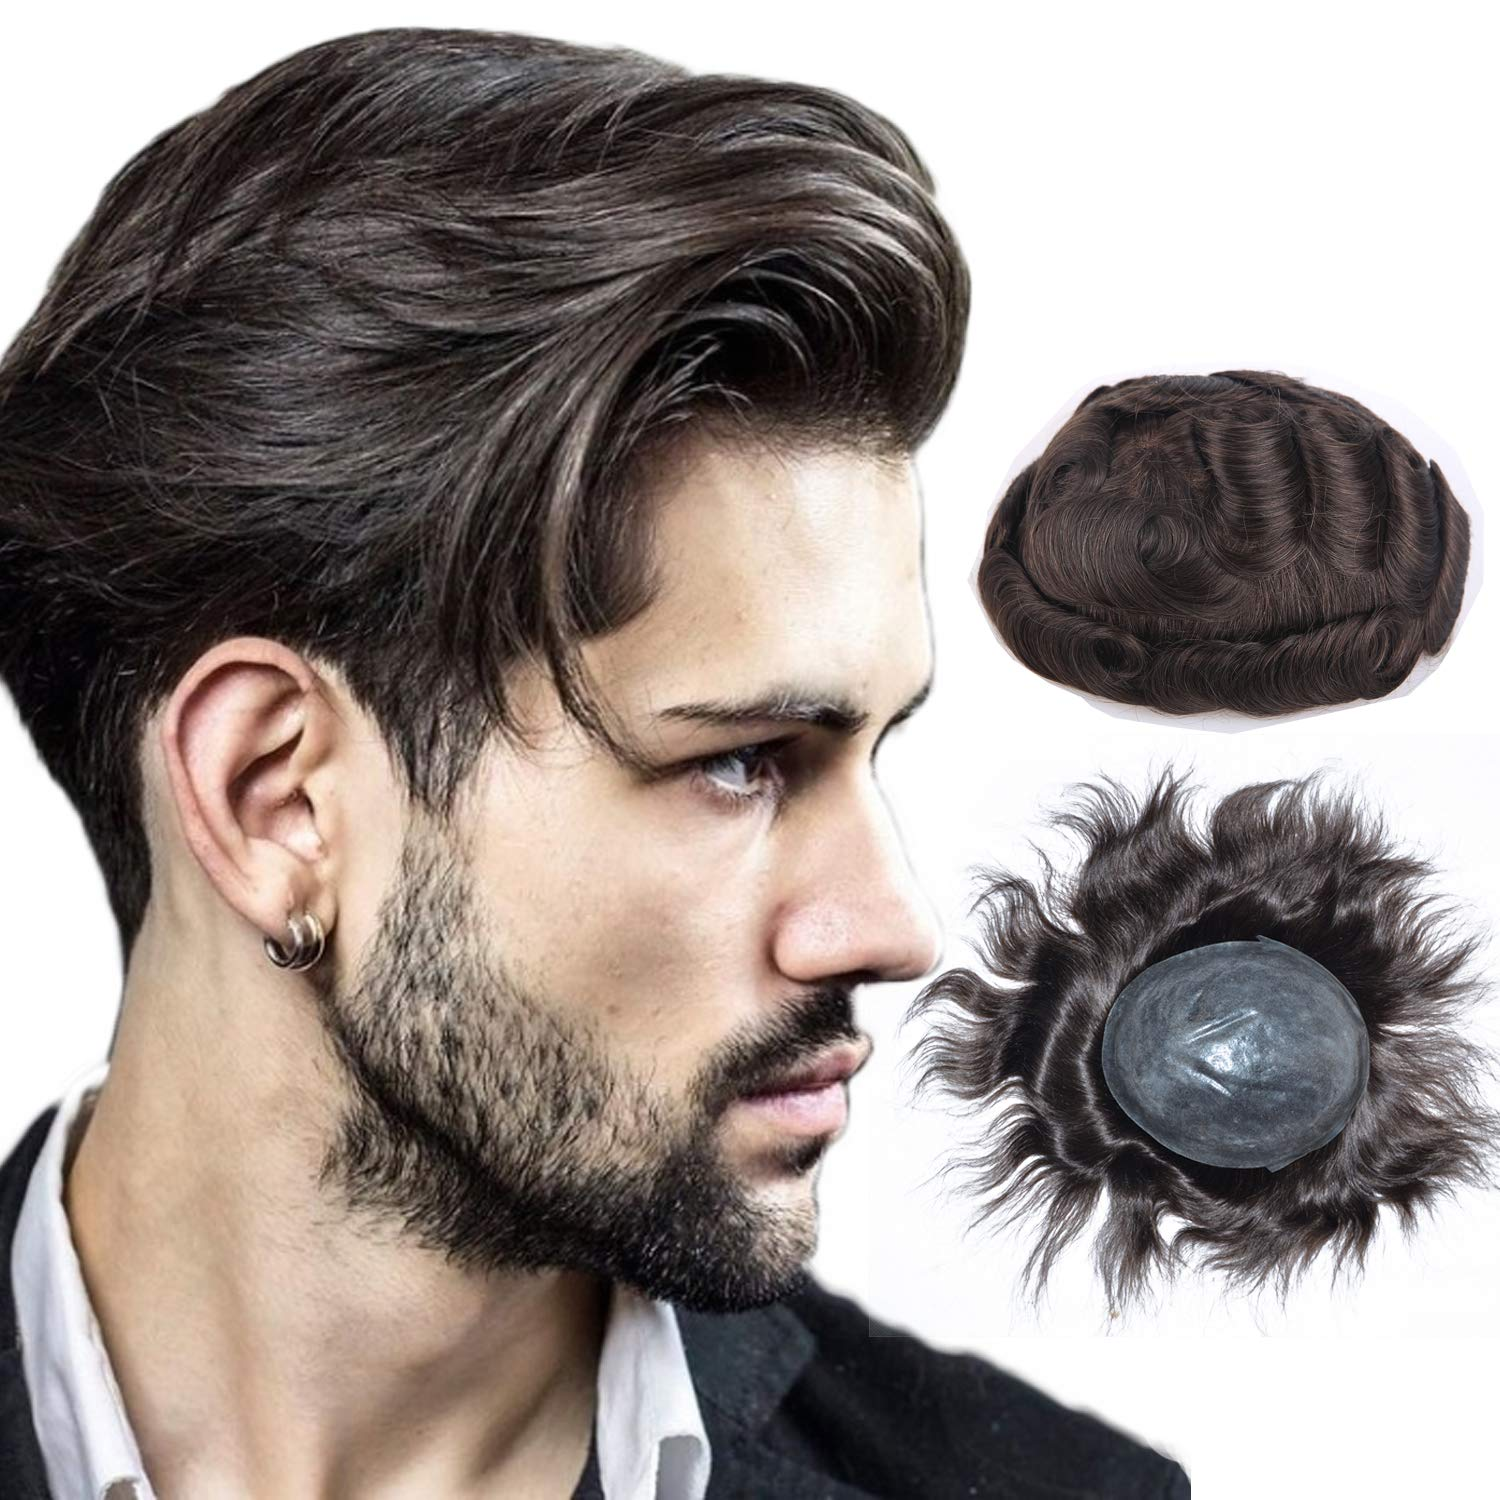 Soft Skin Human Hair Pieces Toupee for Men, LLWear European Virgin Human Hair Mens Replacement System with 8X10 Inch Cap Dark Brown Color(#2)